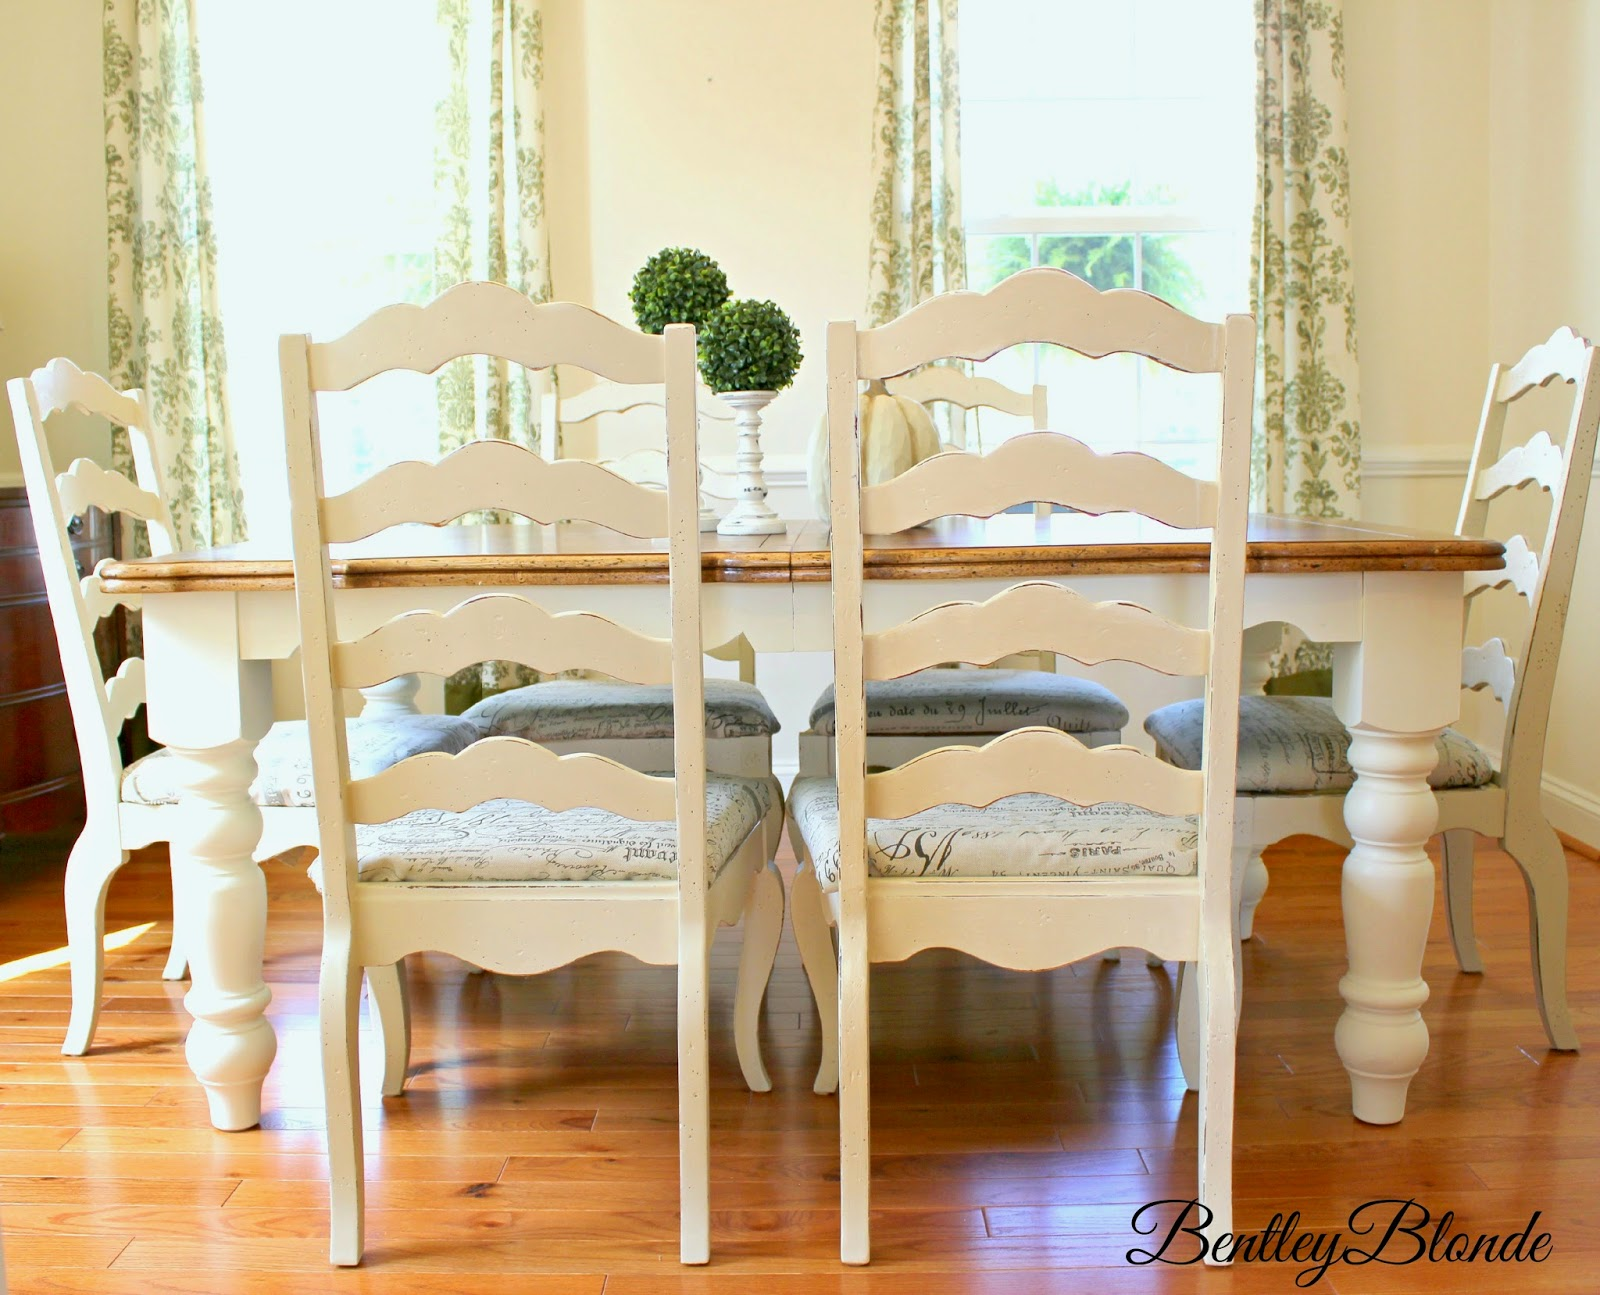 White Table Legs Ivory Chairs I Can T Wait To Sit Around This With Family Enjoying Many Delicious Mealemories Together In The Future